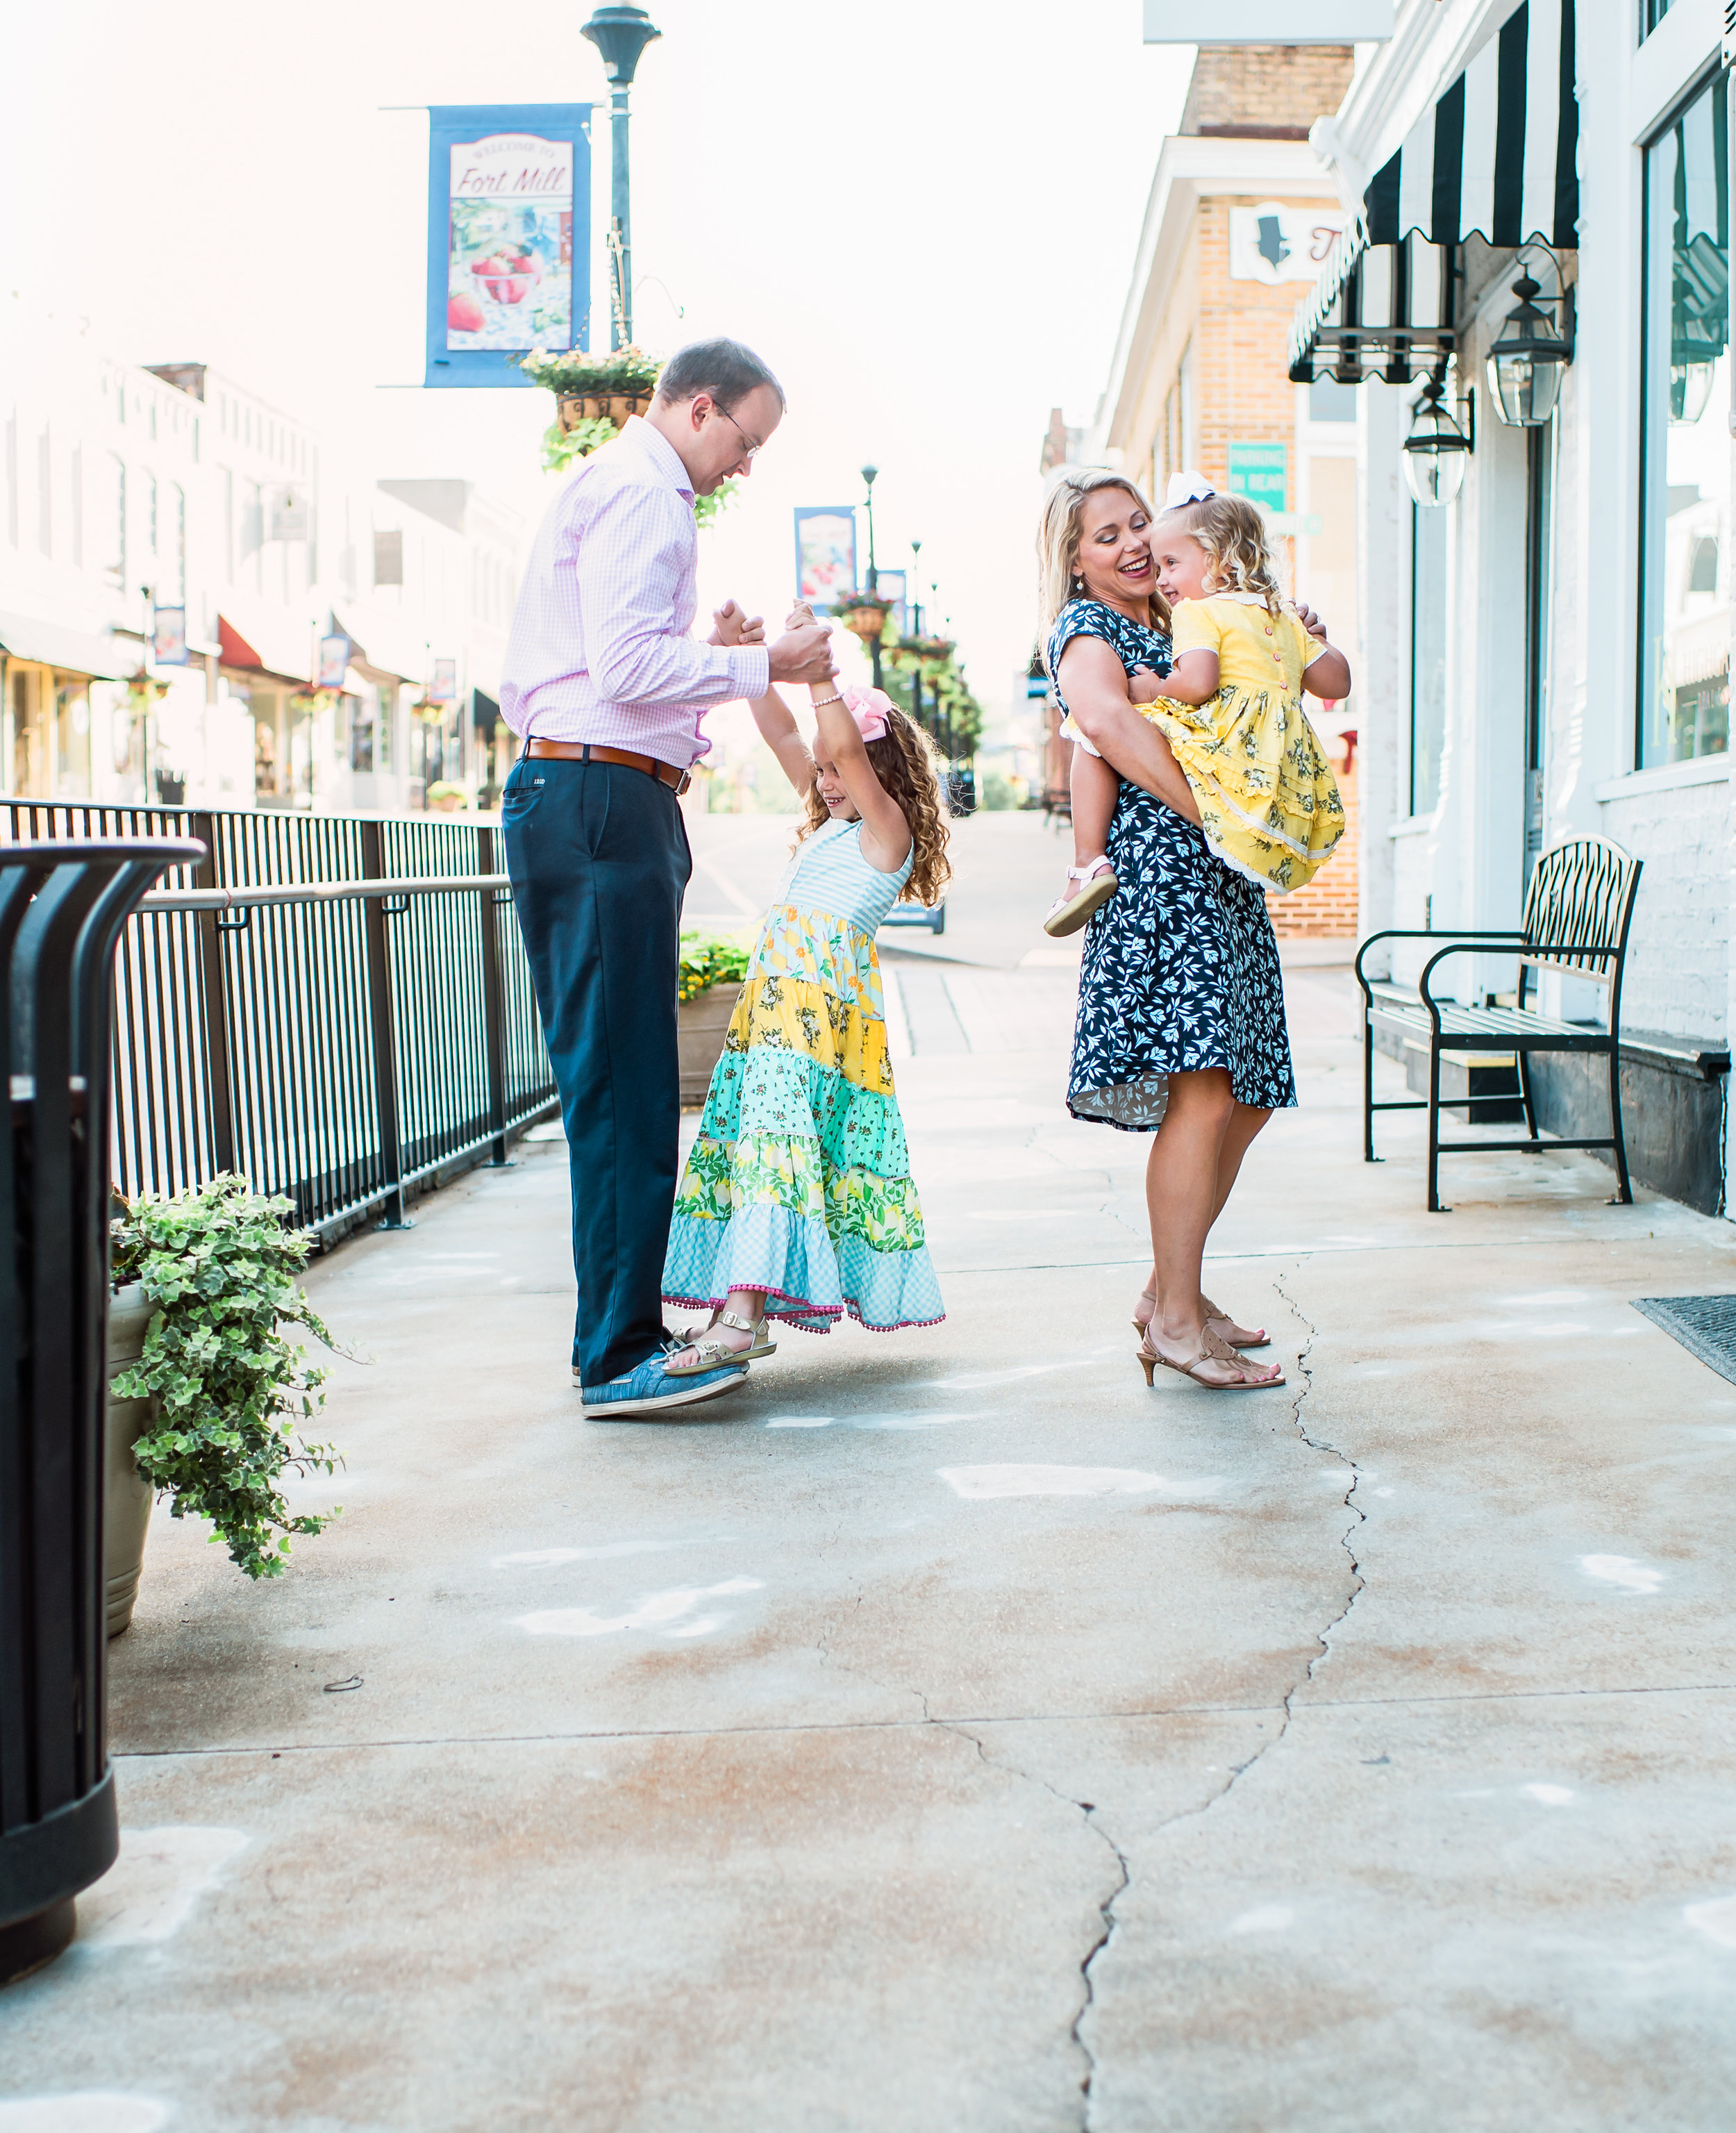 Family Photography in Fort Mill, SC